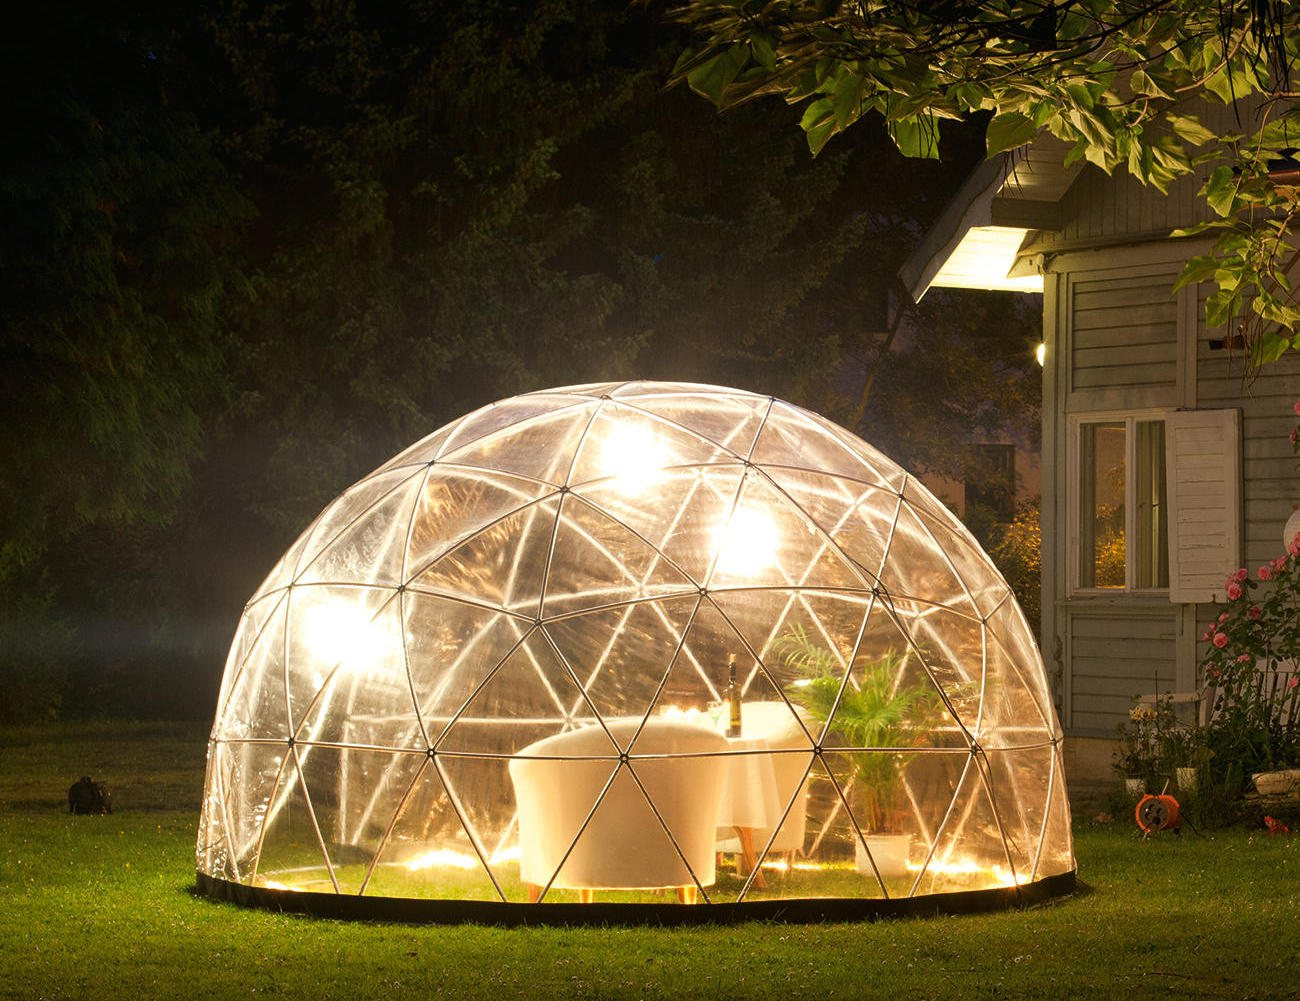 Garden Igloo - Outdoor Living Space For Your Garden ... on Garden And Outdoor Living id=71879